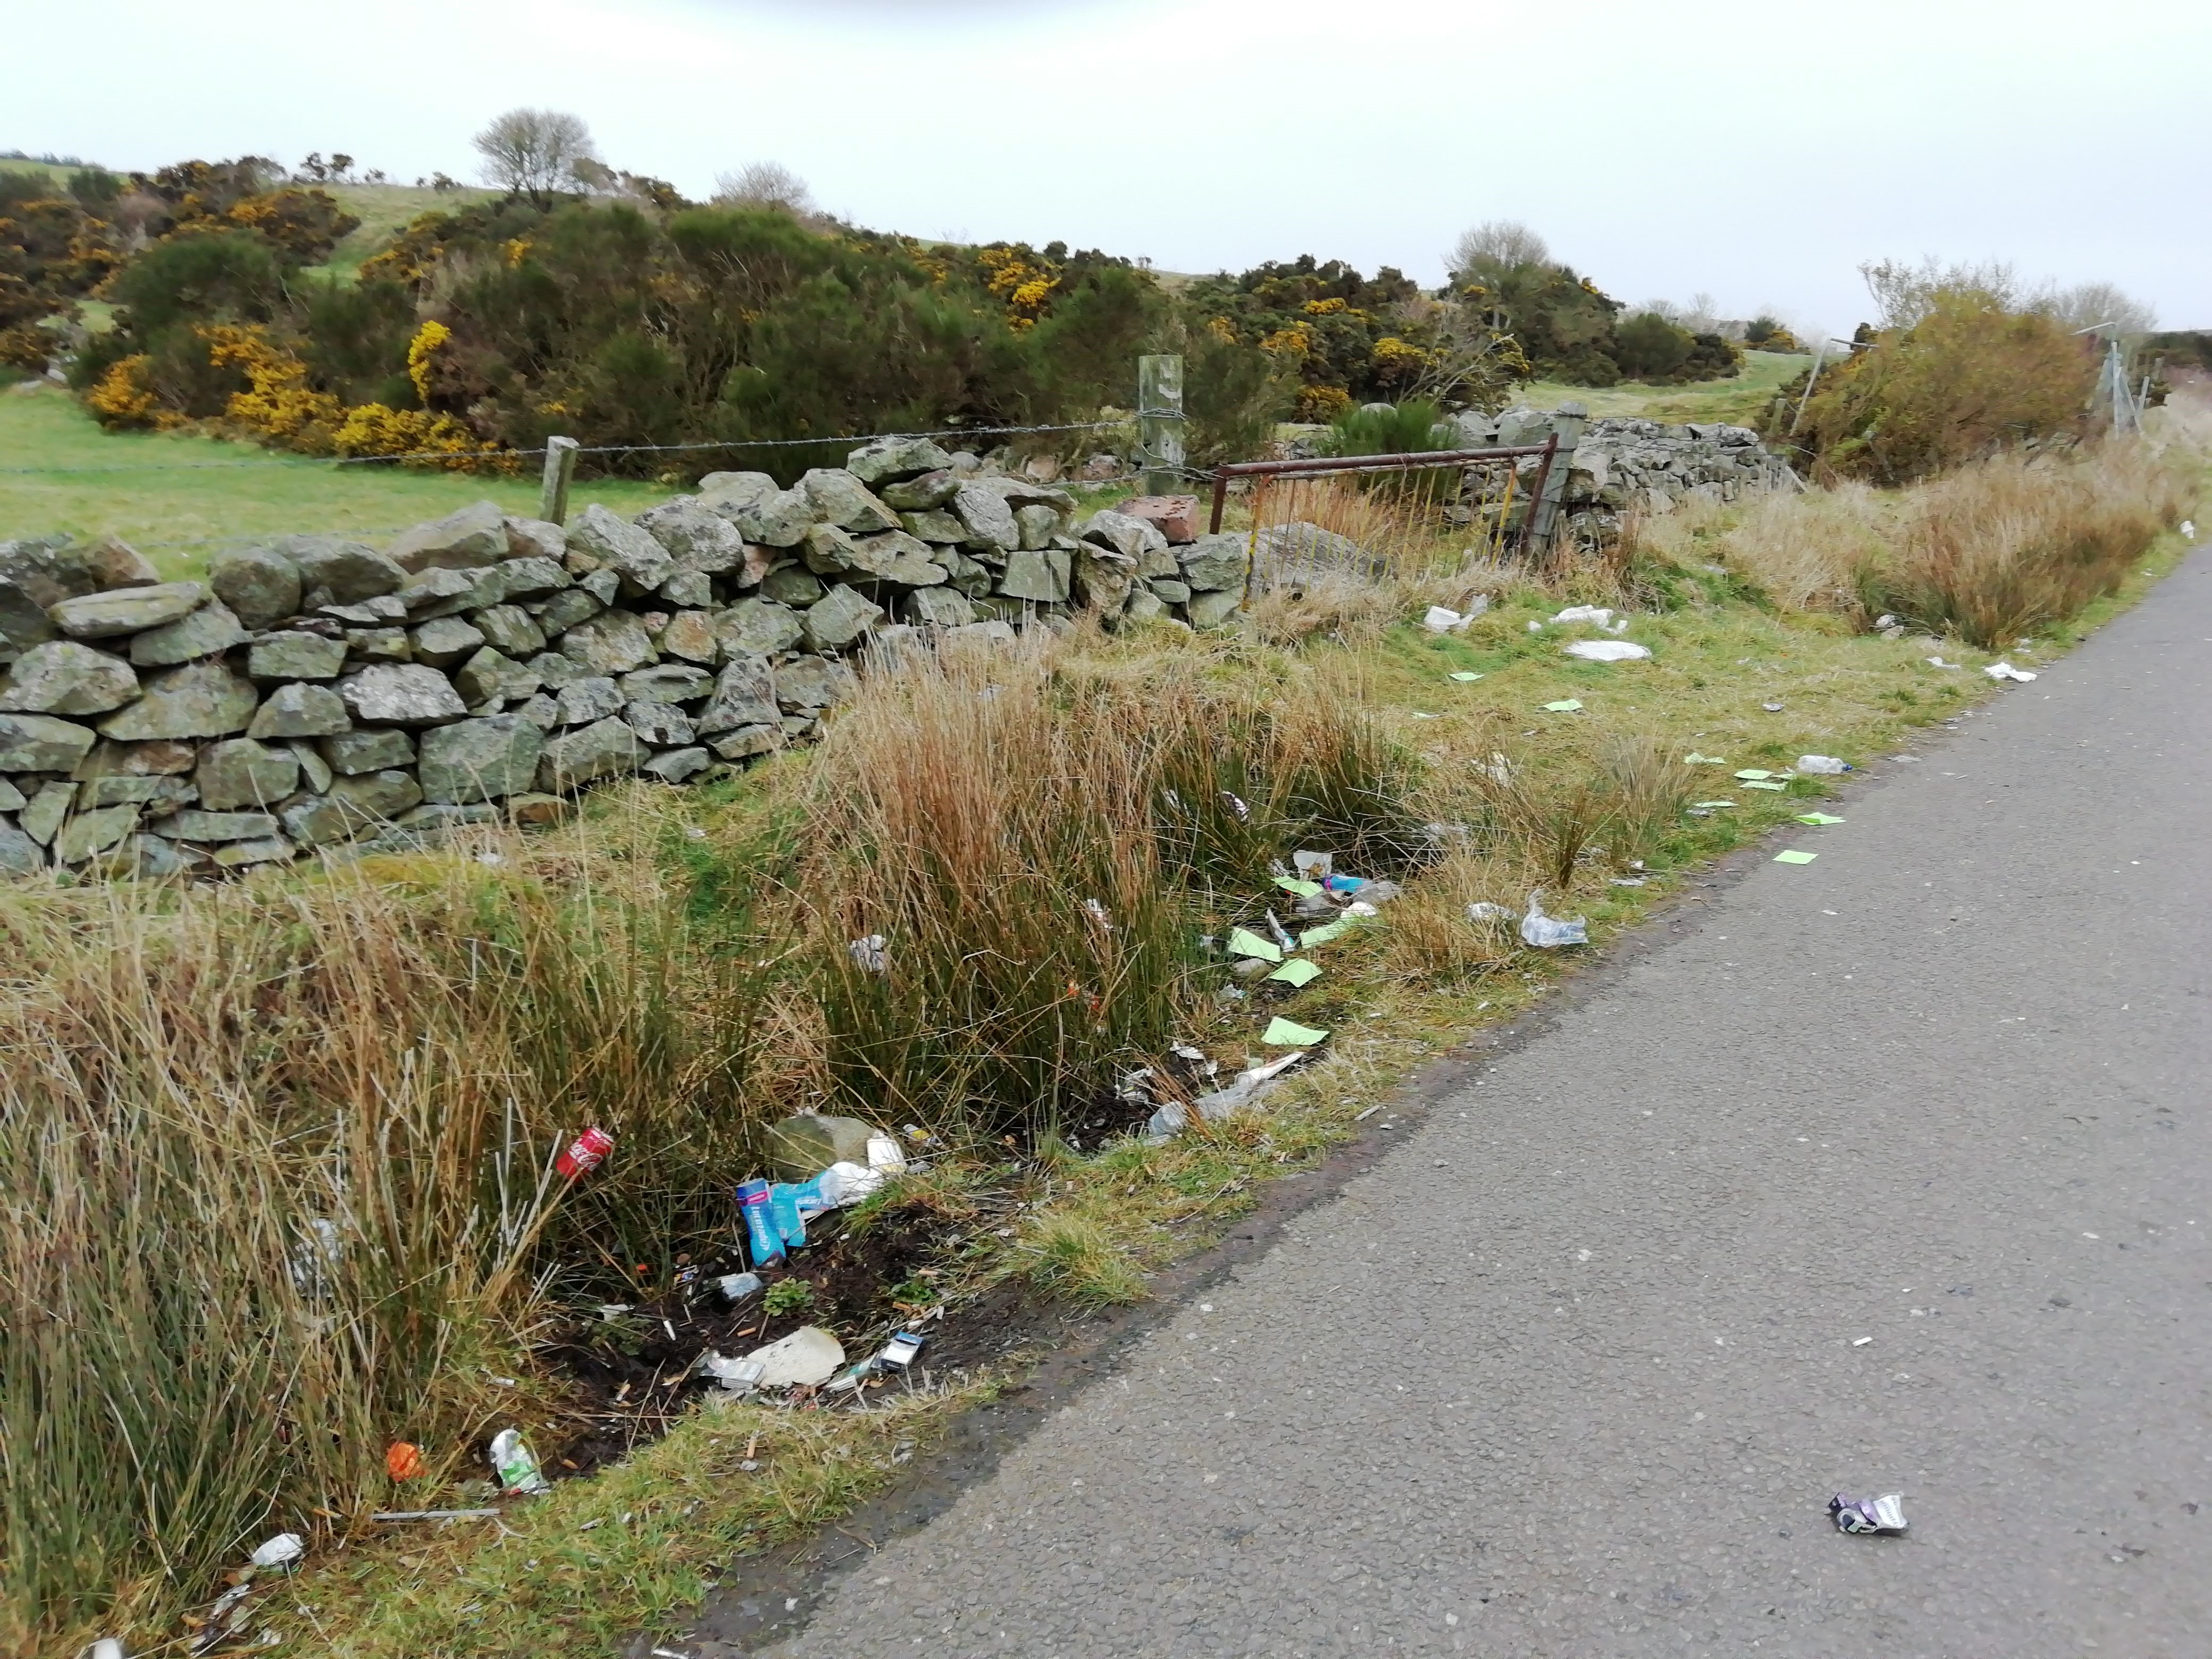 Residents have complained that litter is being left near Lochside Academy.